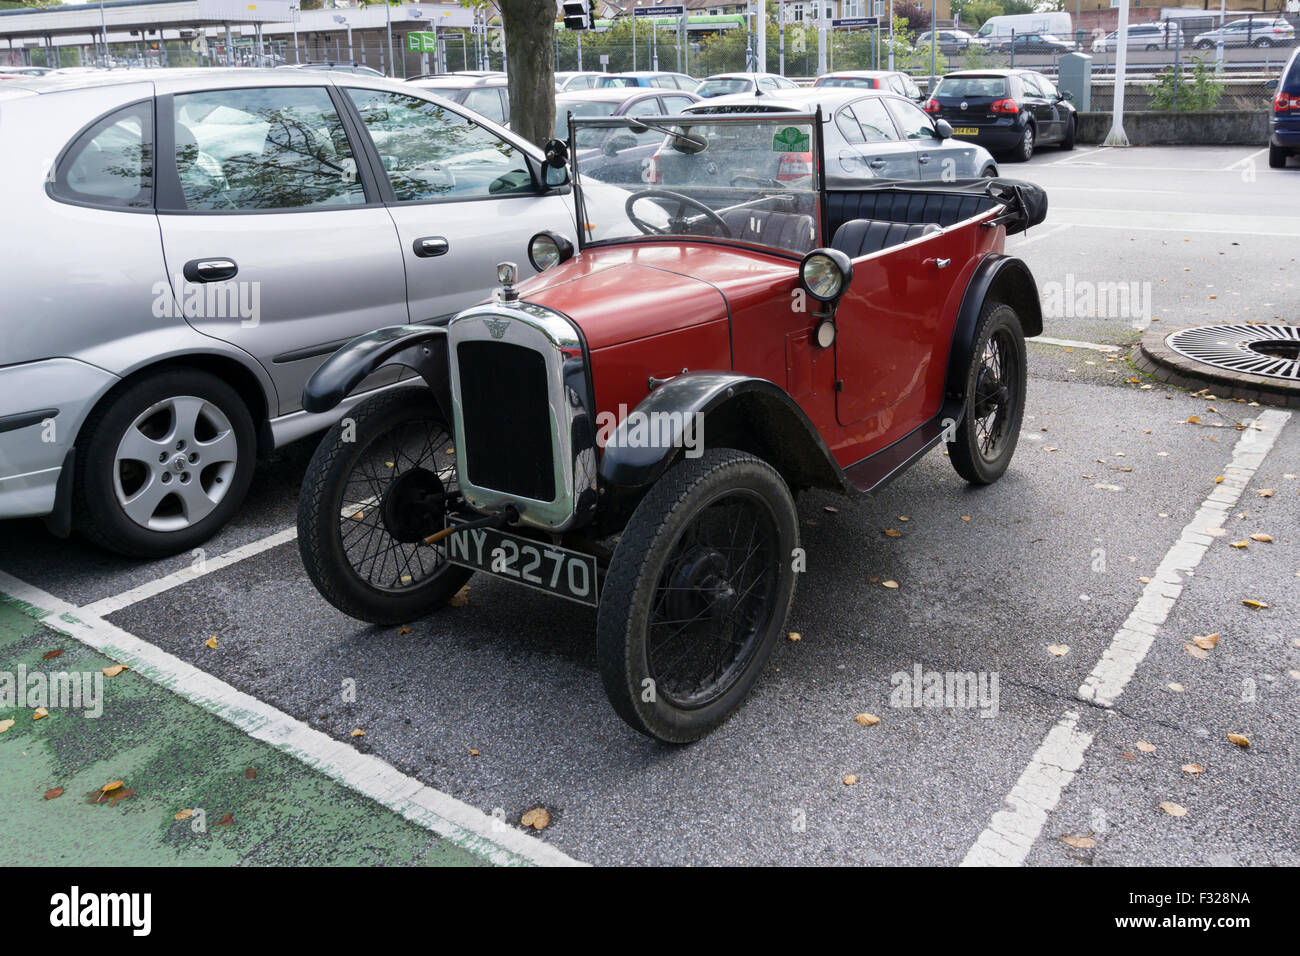 A small vintage Austin 7 car in a car park with larger modern ...